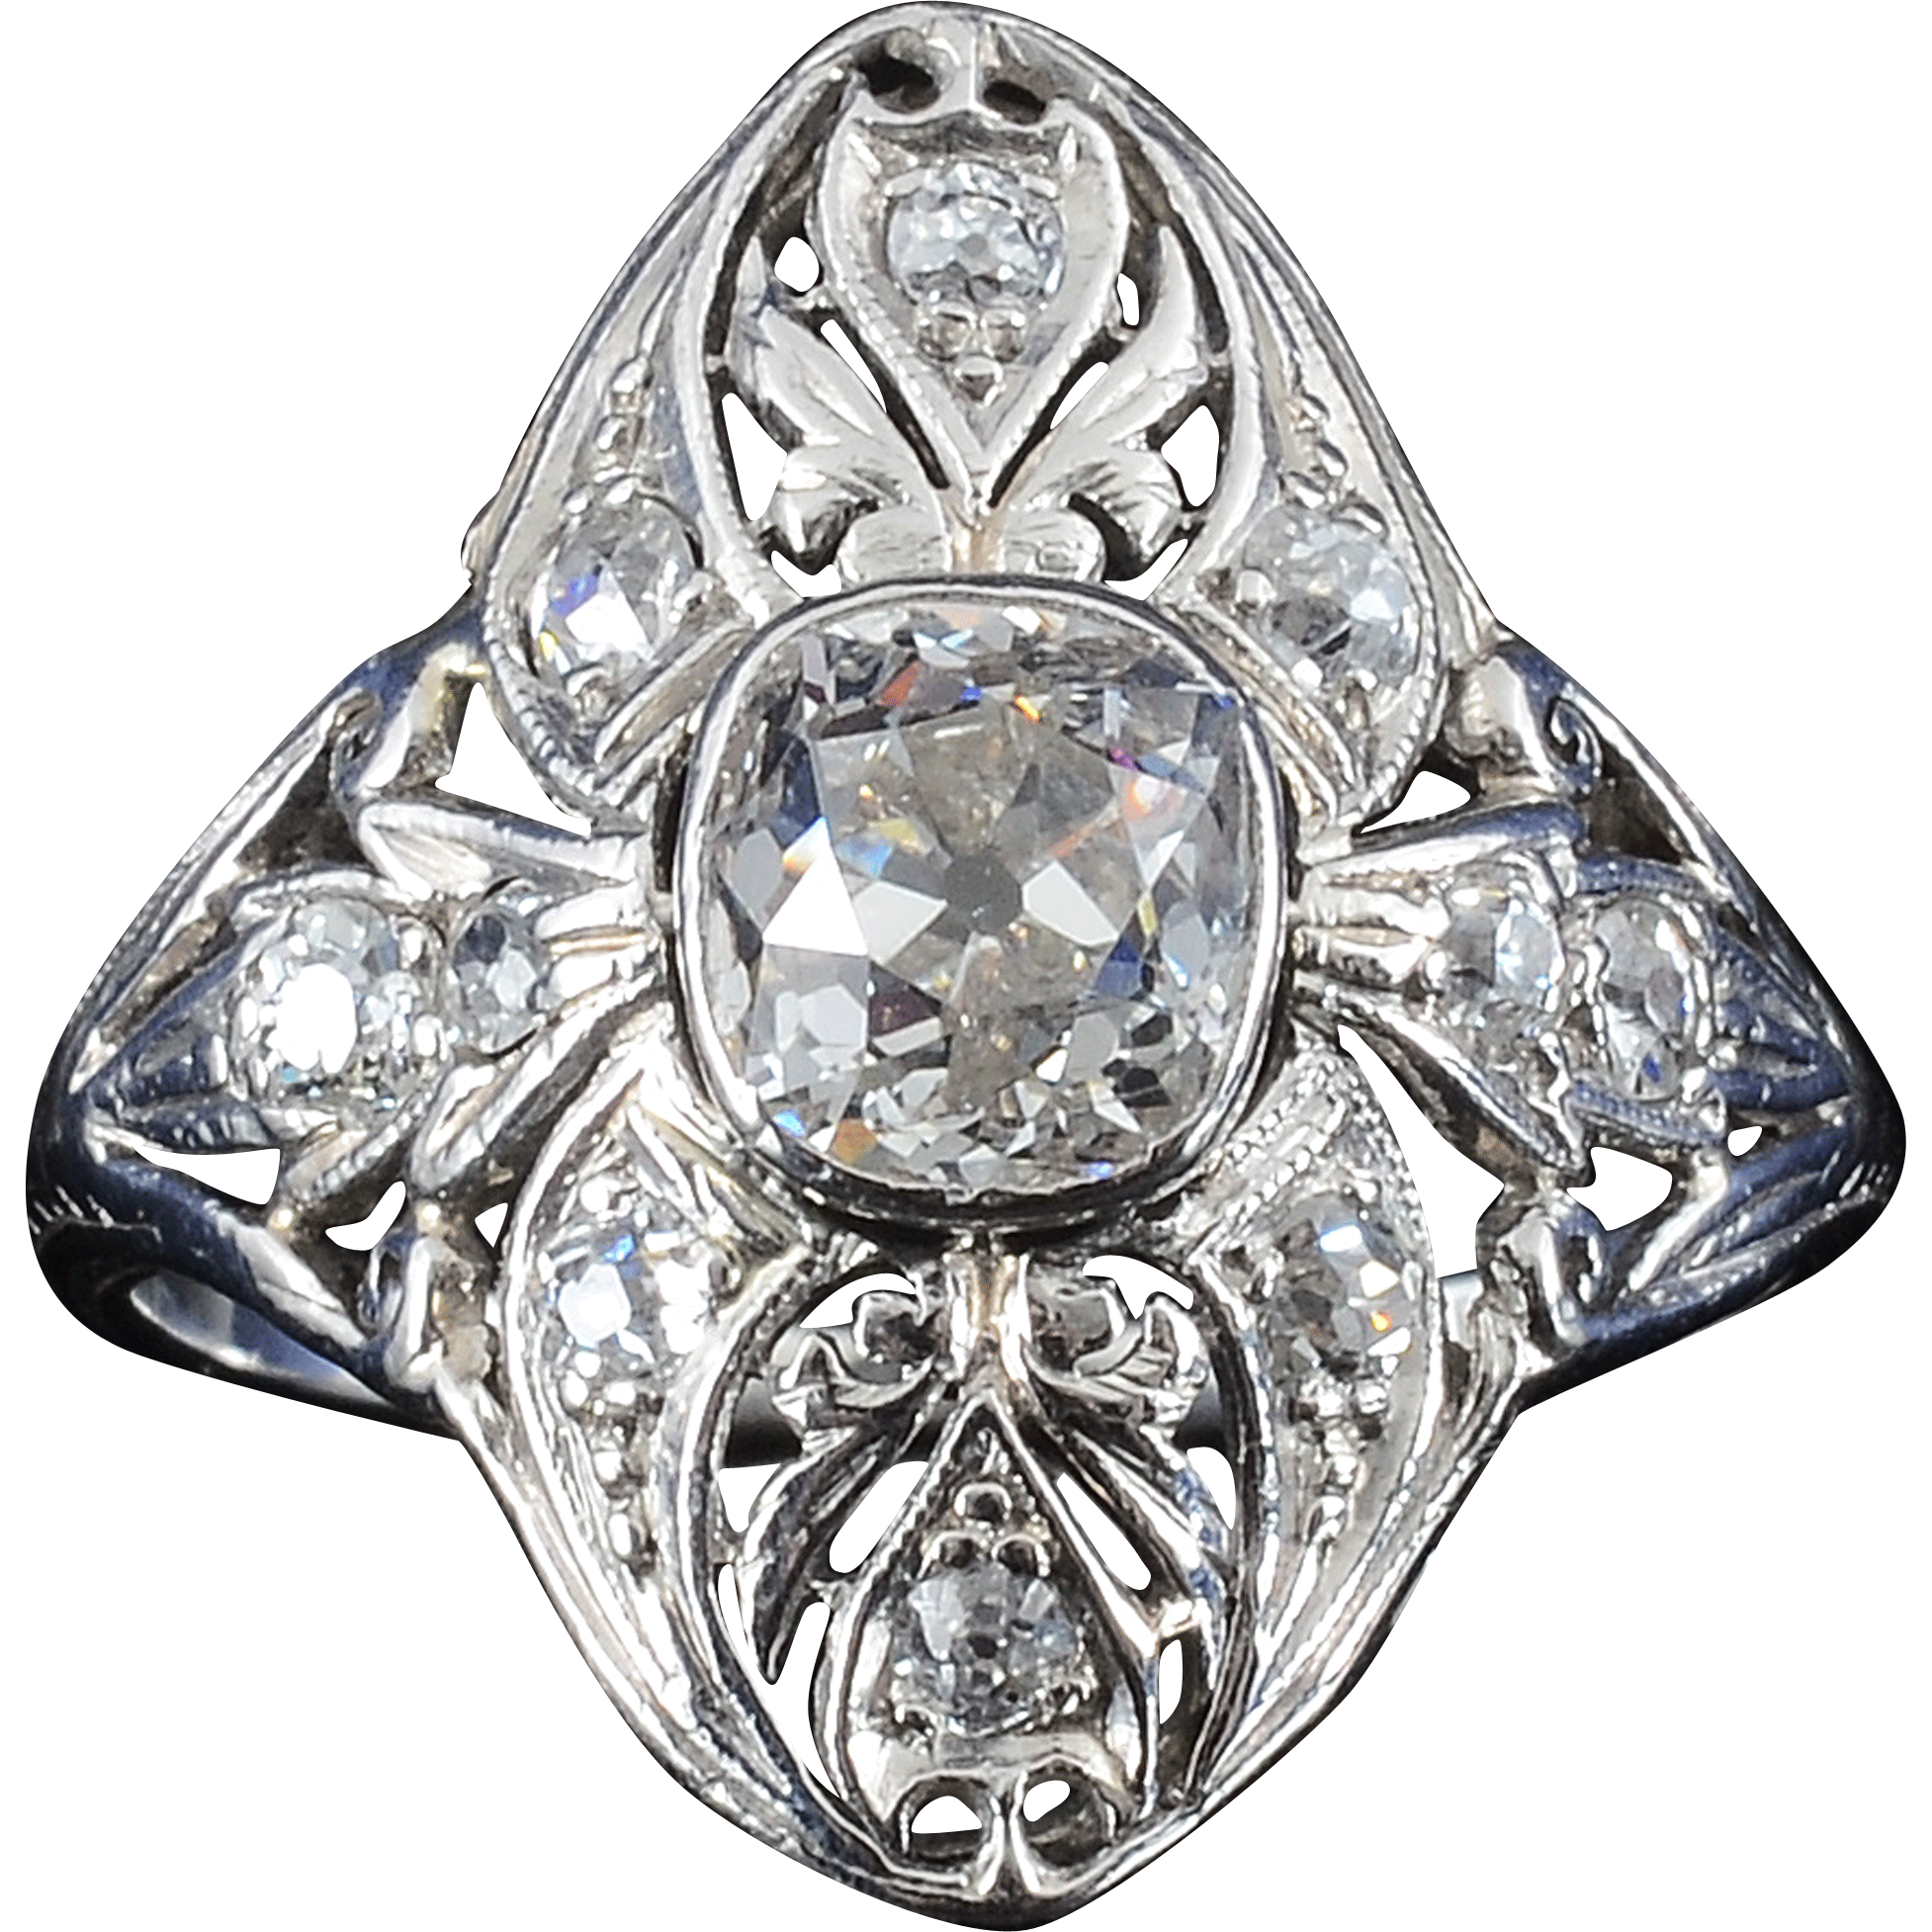 Edwardian Platinum 1.04 Carat Center Diamond Ring